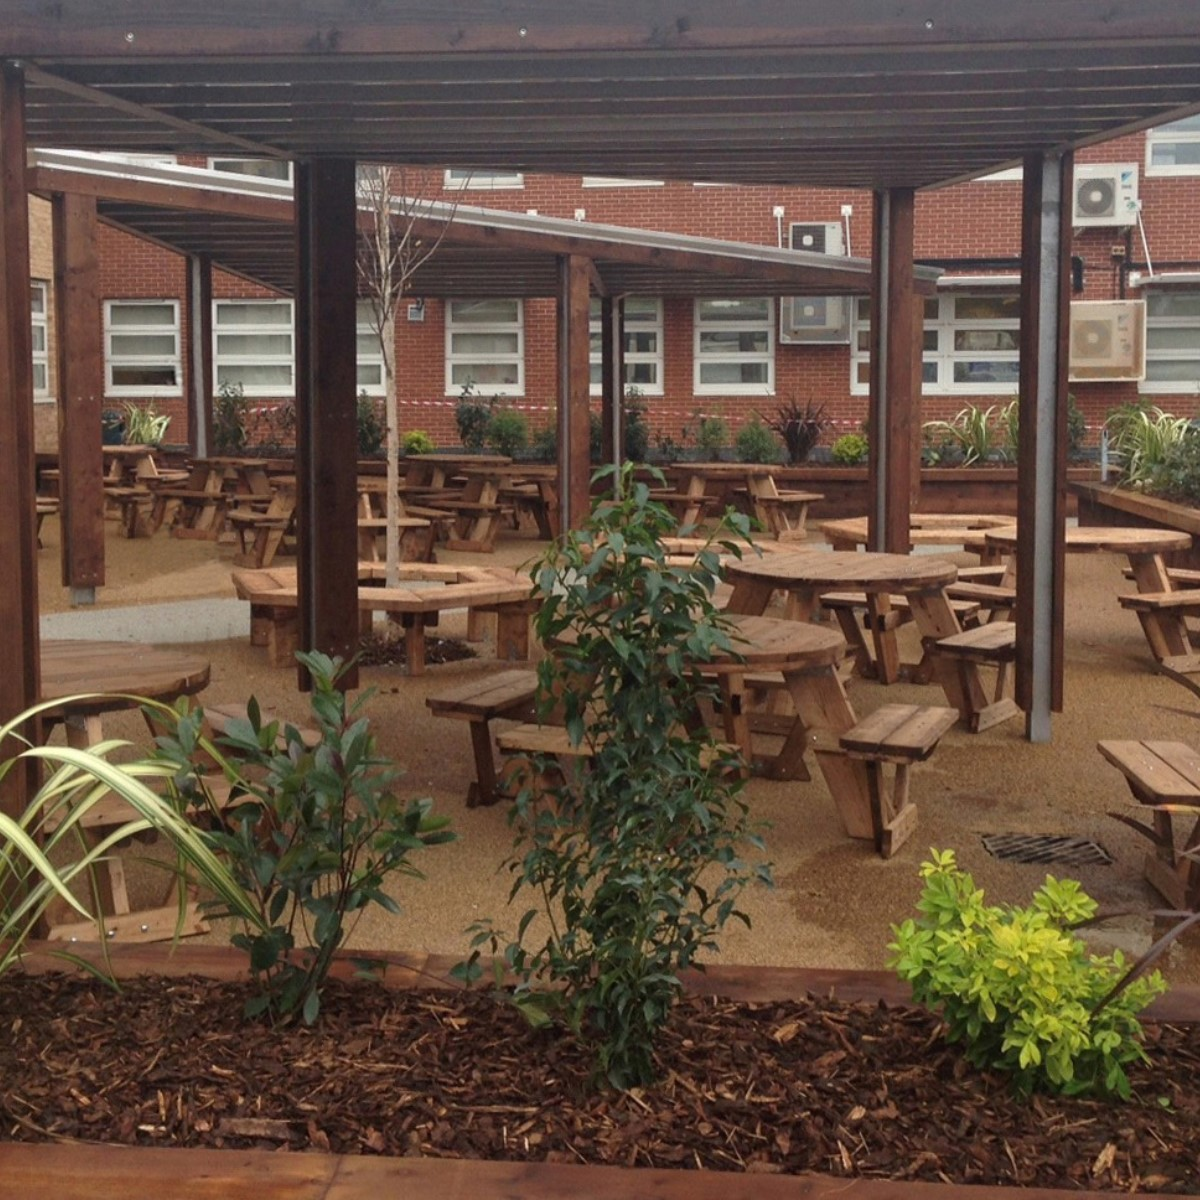 A pub patio with a metal shelter above round wooden picnic tables